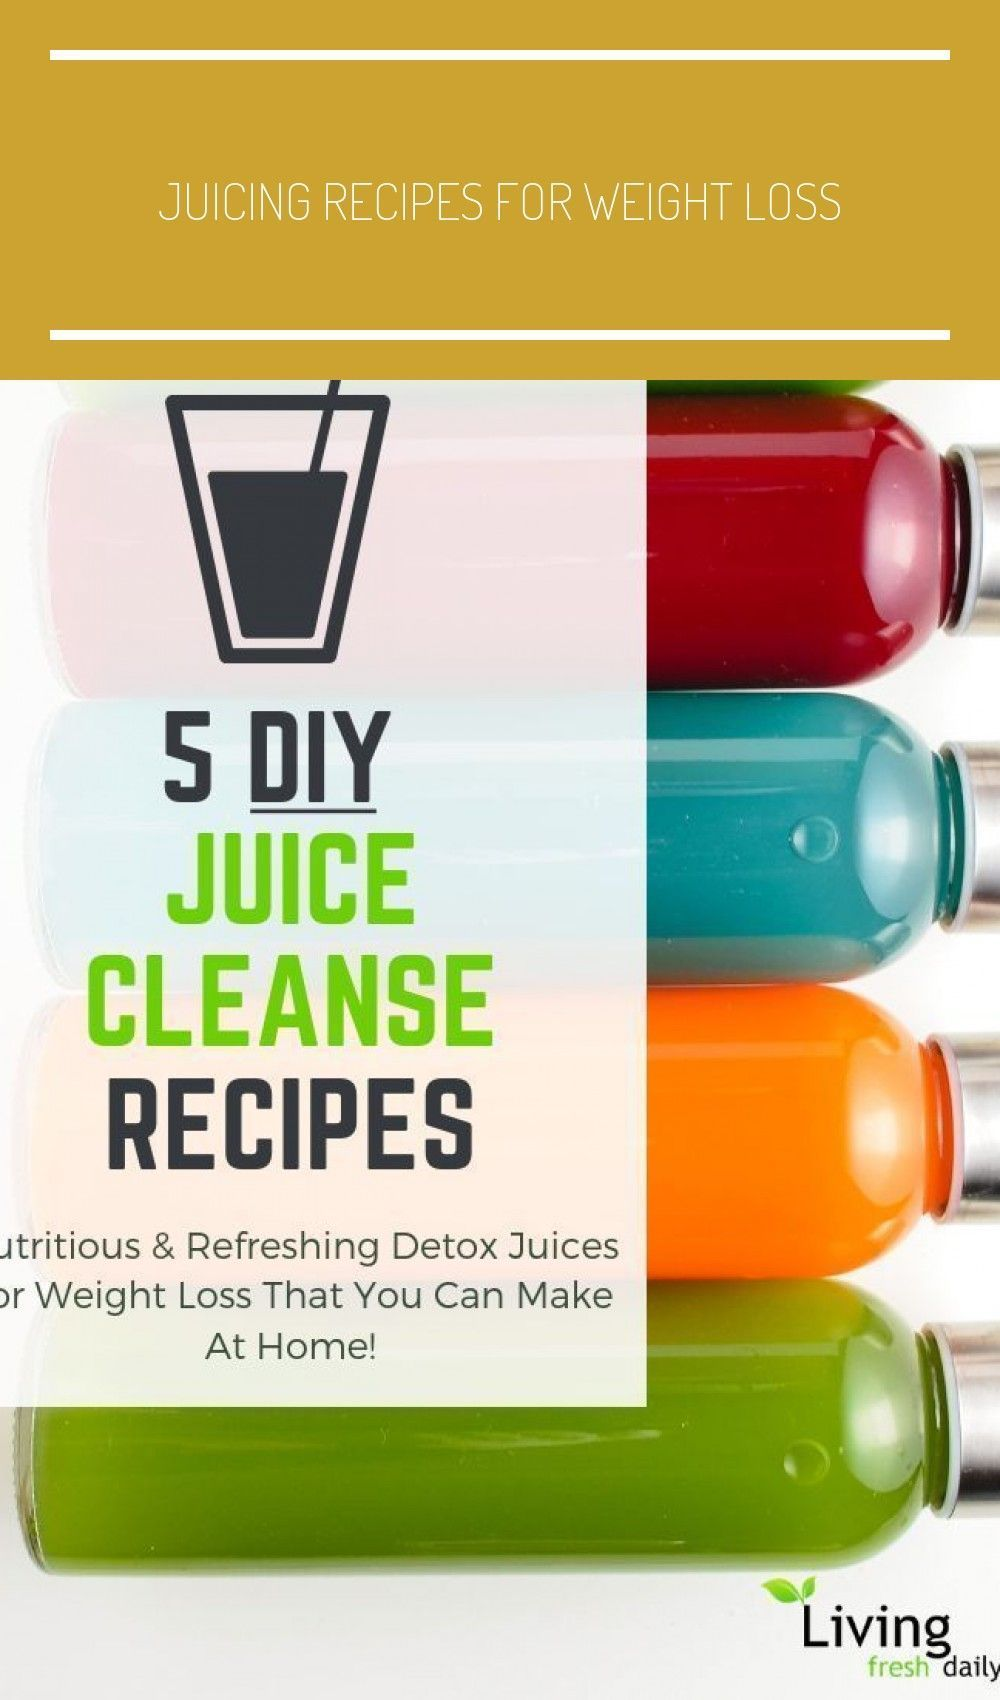 5 DIY detox juice cleaning recipes for weight loss! / #24hourJuiceCleanserecipes #bestJuiceCleanserecipes #cheapJuiceCleanserecipes #Cleaning #detox #DIY #diyJuiceCleanserecipes #easyJuiceCleanserecipes #fruitJuiceCleanserecipes #greenJuiceCleanserecipes #homemadeJuiceCleanserecipes #juice #JuiceCleanserecipes3day #JuiceCleanserecipesacne #JuiceCleanserecipescarrot #JuiceCleanserecipescleaneating #JuiceCleanserecipescolon #JuiceCleanserecipesdetox #JuiceCleanserecipesdr.oz #JuiceCleanserecipese  #juicefast